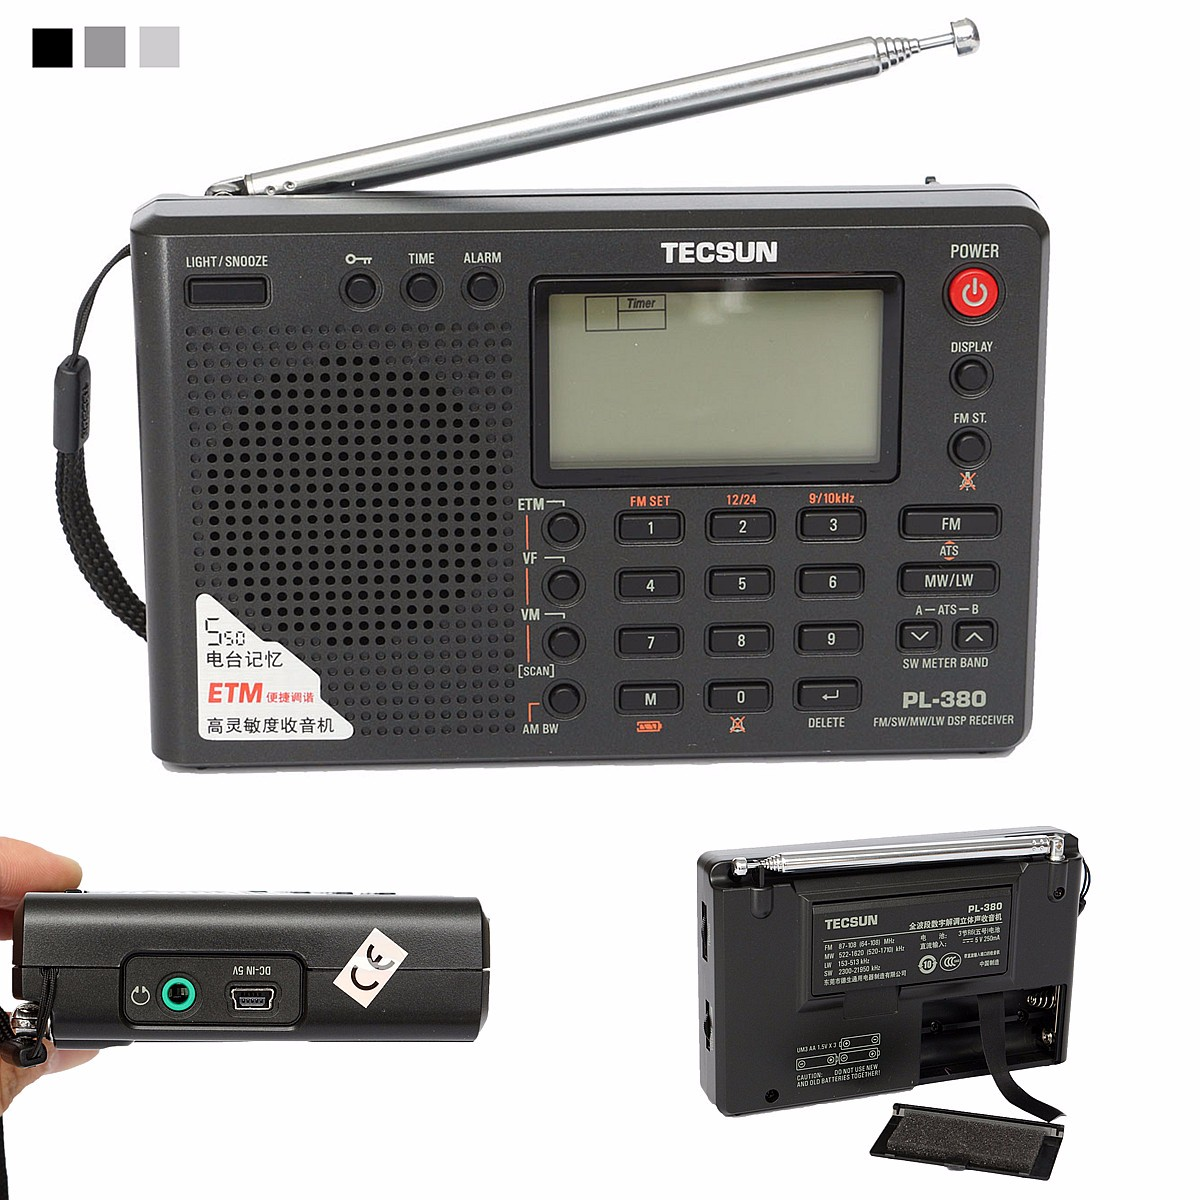 TECSUN PL-380 DSP PLL FM MW SW LW Digital Stereo Radio World-Band Receiver New Silver Gray Black 7 Tuning Mode Selectable tecsun pl 310 fm am sw lw dsp world band radio pl310